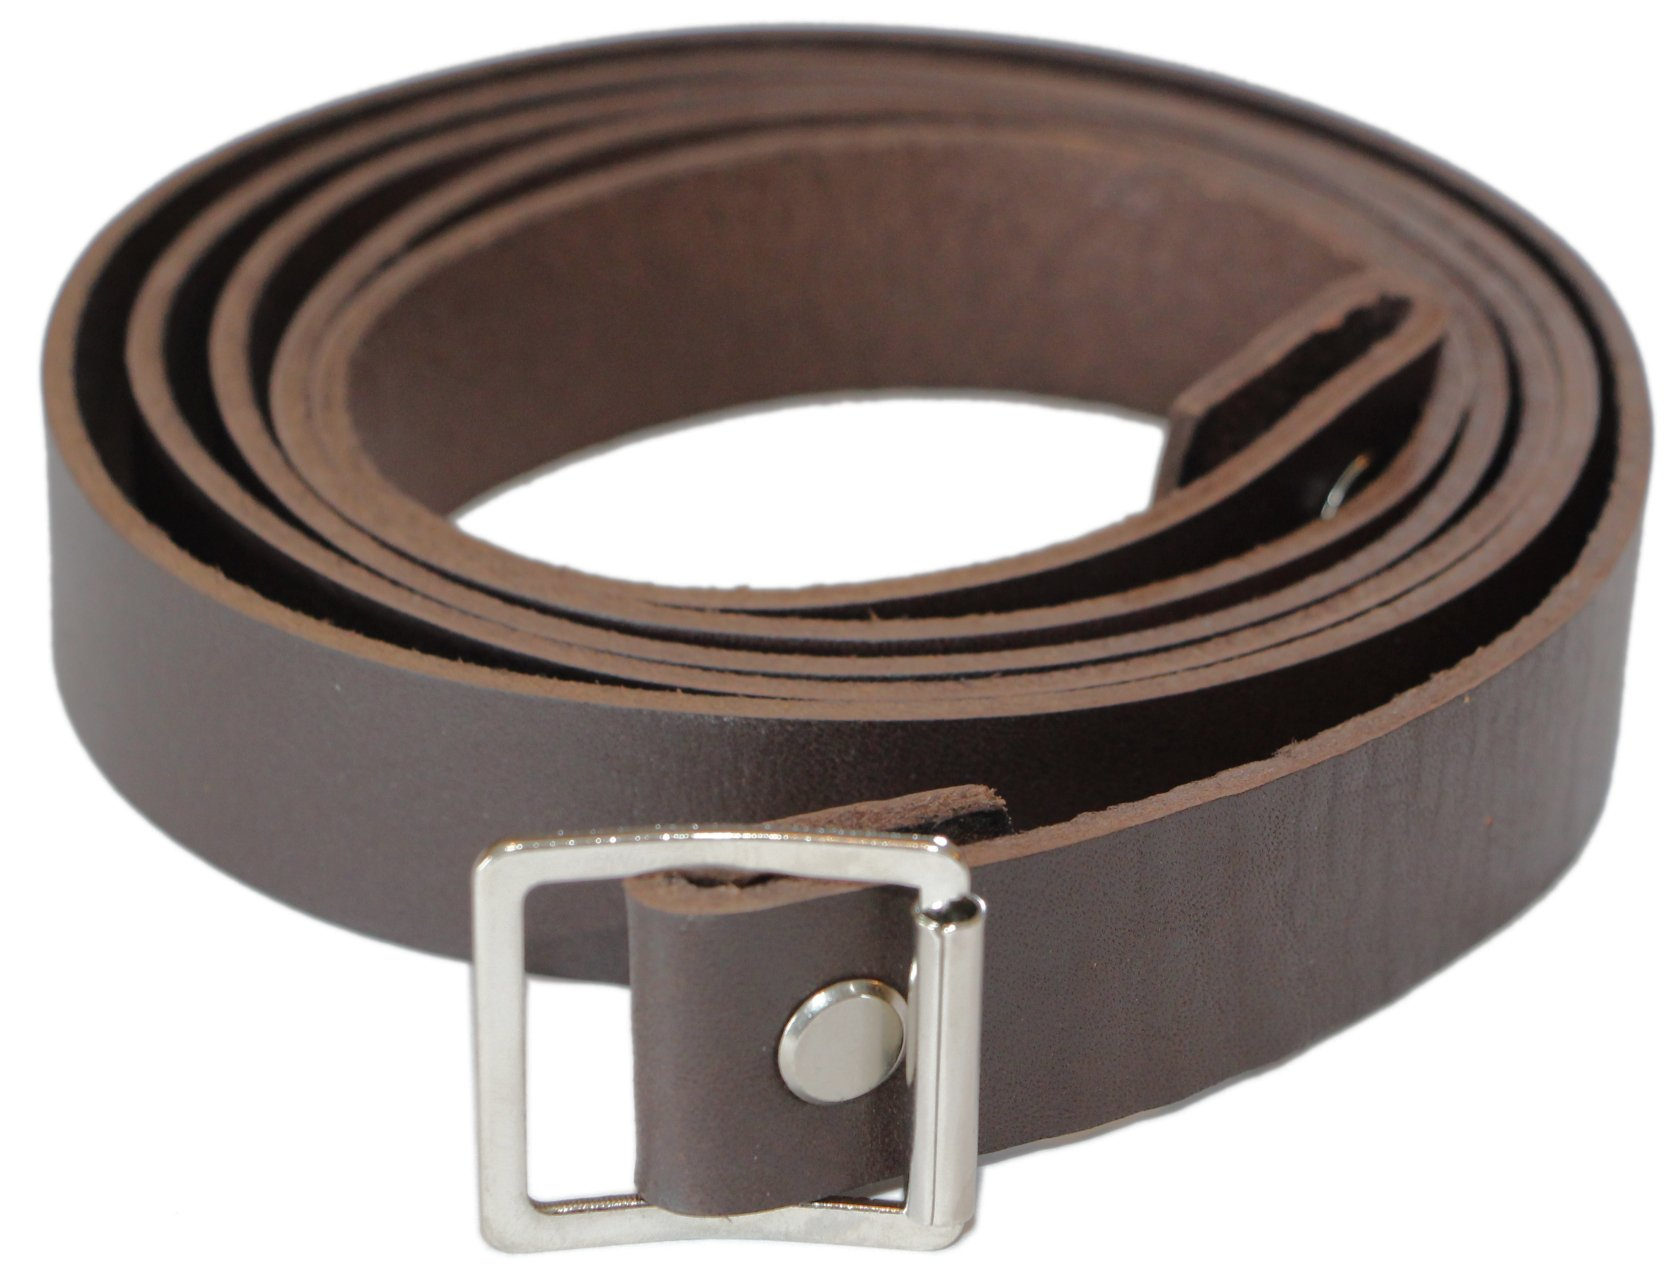 Indiana Jones Leather Bag Strap/Rifle Sling by Magnoli Clothiers (Dark Brown)